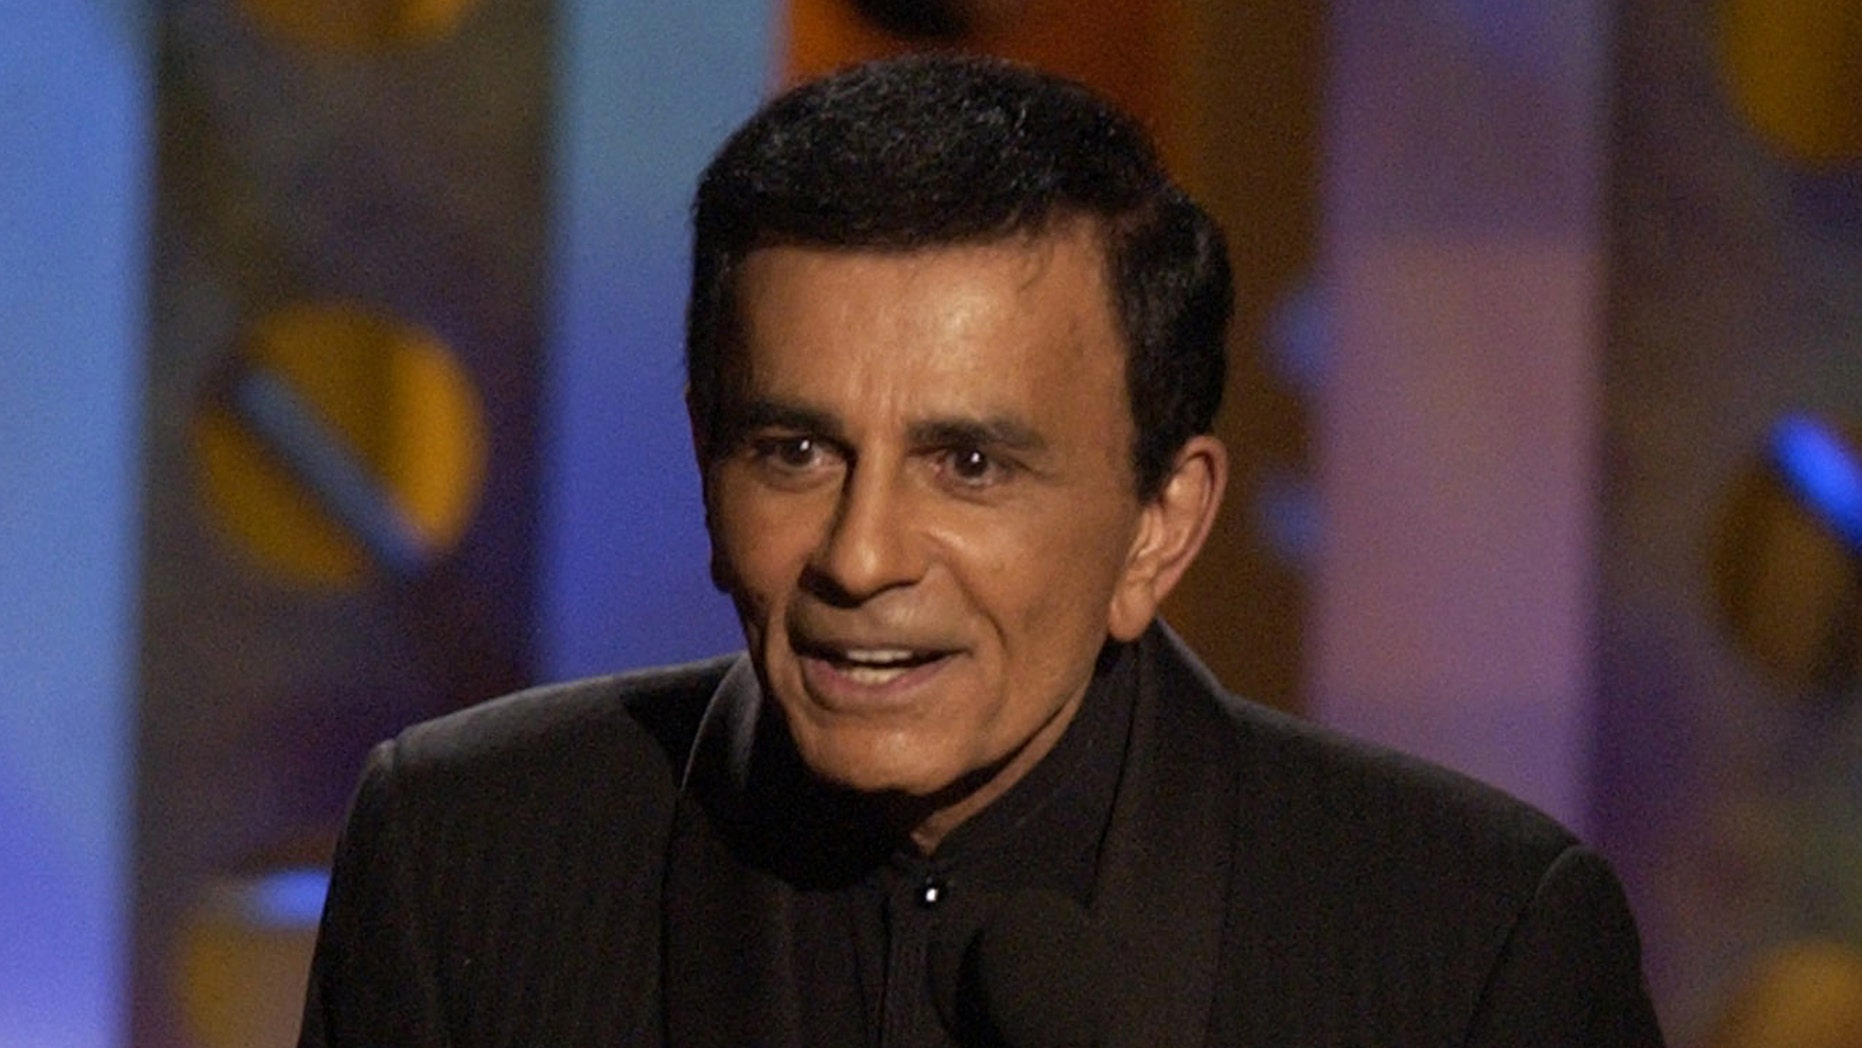 October 27, 2003. Casey Kasem accepts a radio icon award  during the Radio Music Award at the Aladdin Hotel in Las Vegas